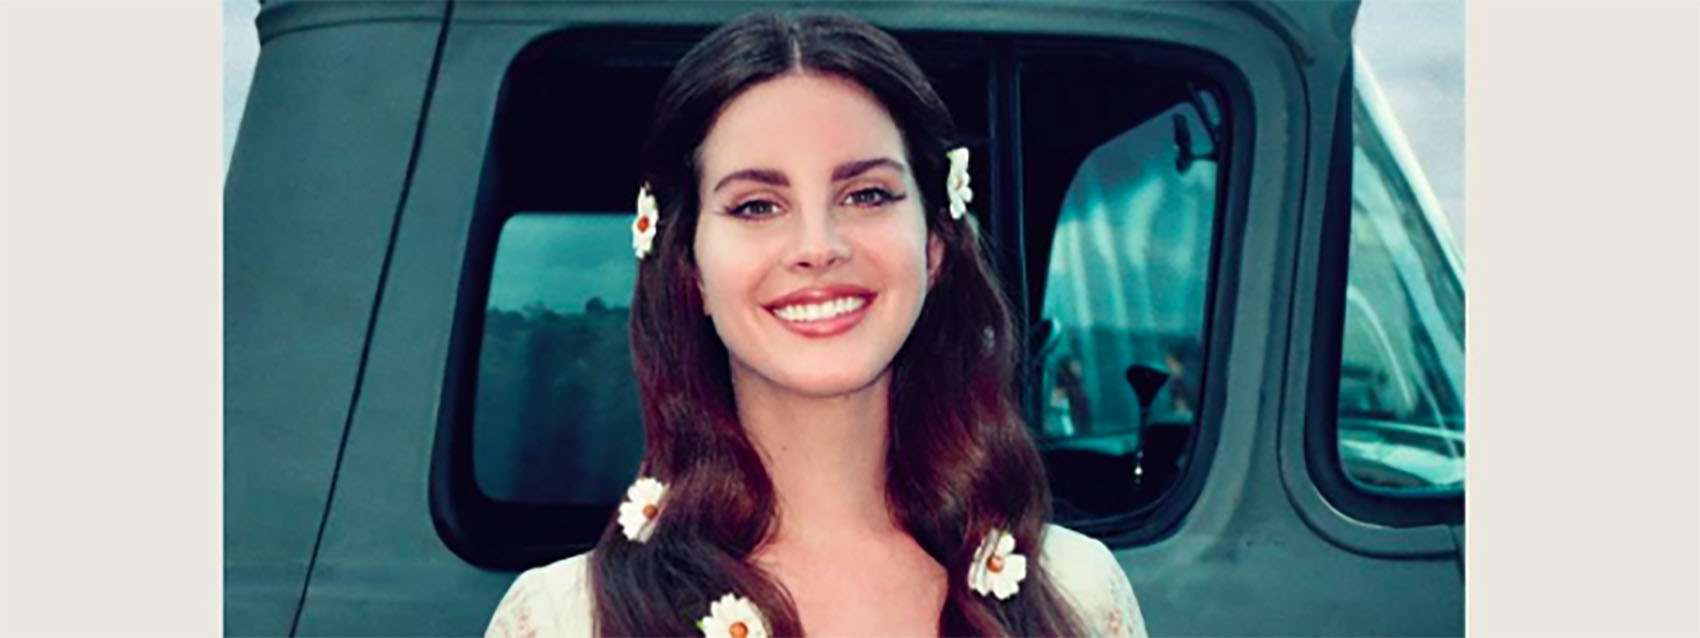 Lana del rey lust for life 3